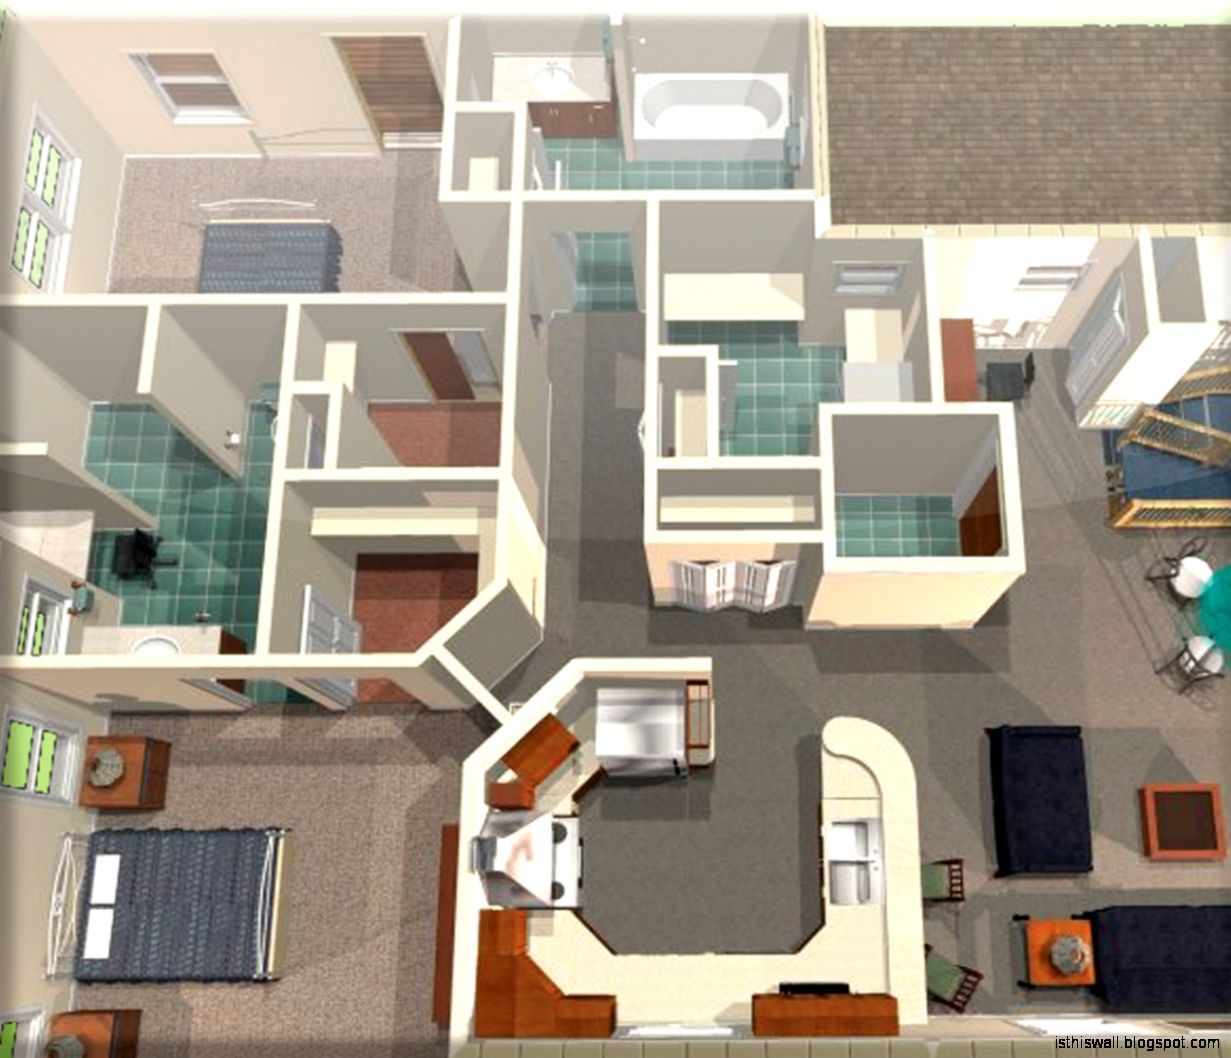 Office Interior Design Software Free Download Full Version Office Interior Design Software Office Interior Design Software Kitchen Design Interior Design Interior Design Software Free Download 25 More 2 Bedroom 3d Floor Plans